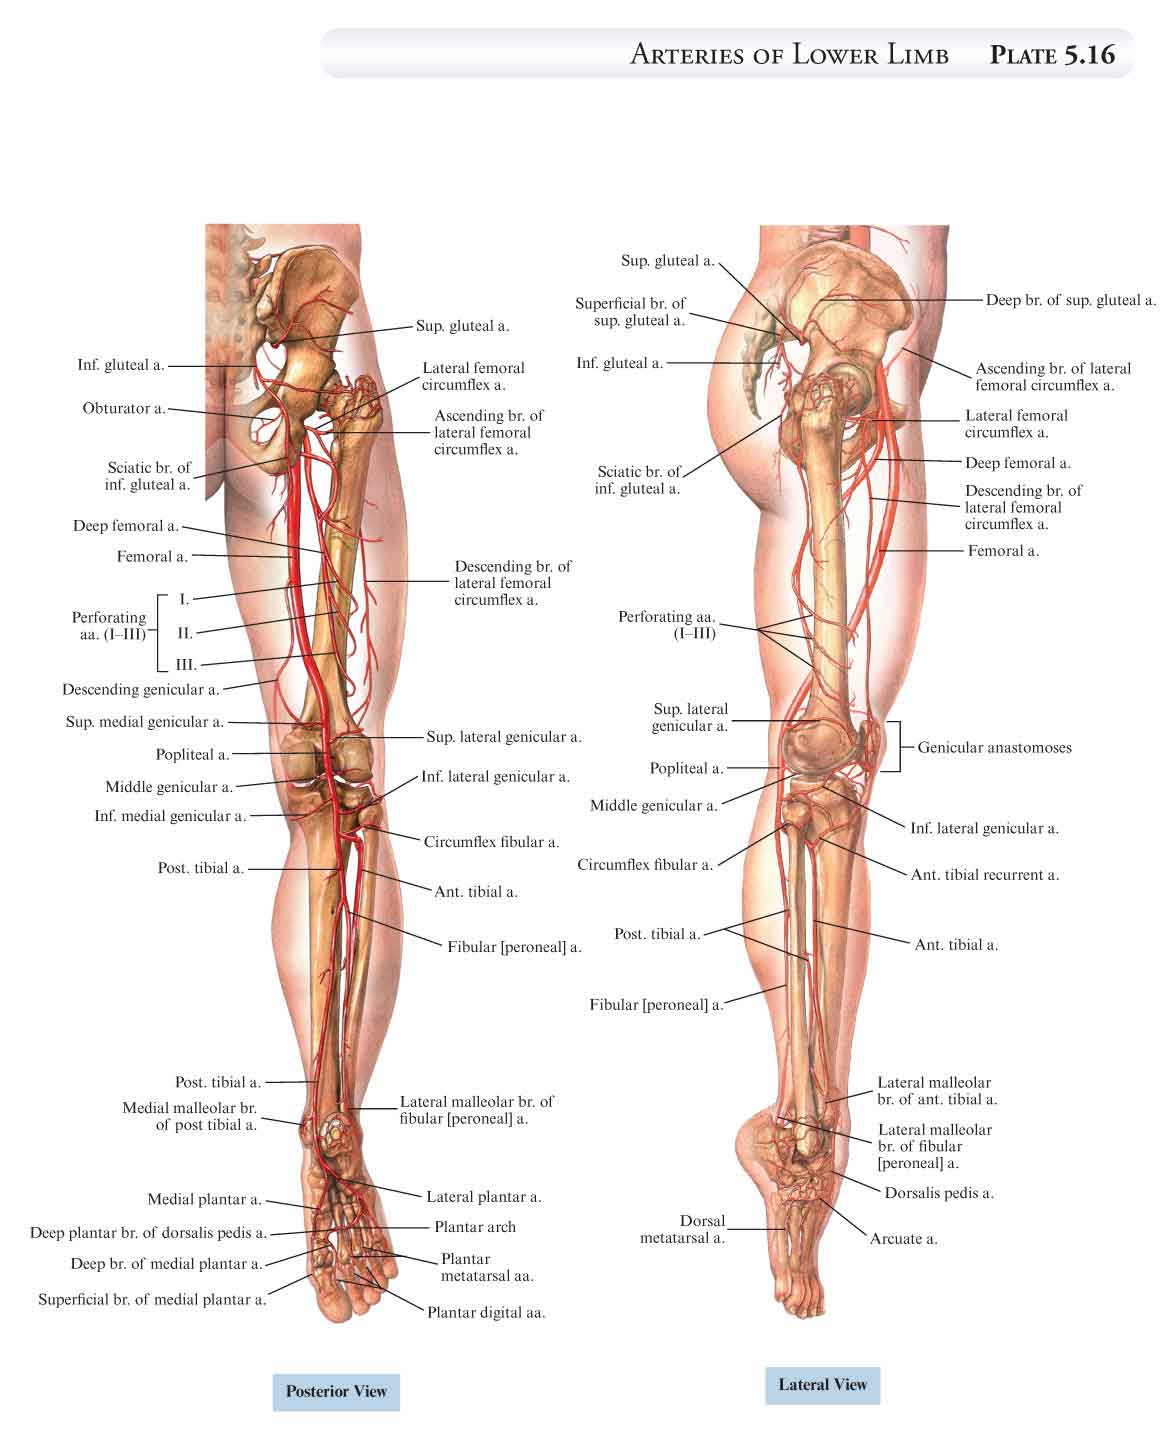 Lower Leg Nerves http://wea-holding.com/images/nerves-lower-leg